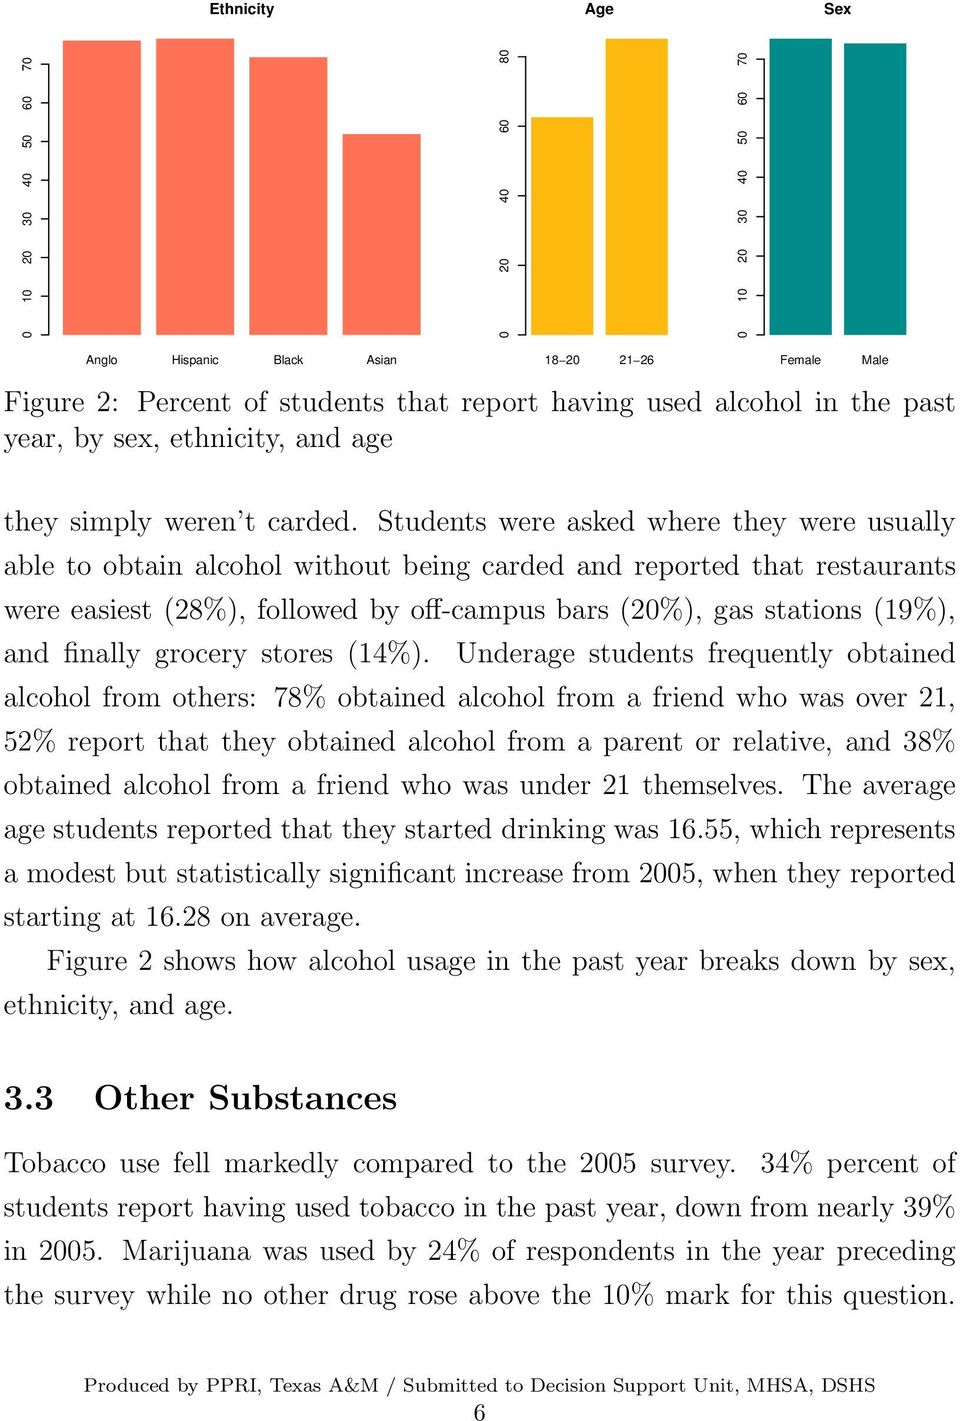 Students were asked where they were usually able to obtain alcohol without being carded and reported that restaurants were easiest (28%), followed by off-campus bars (20%), gas stations (19%), and